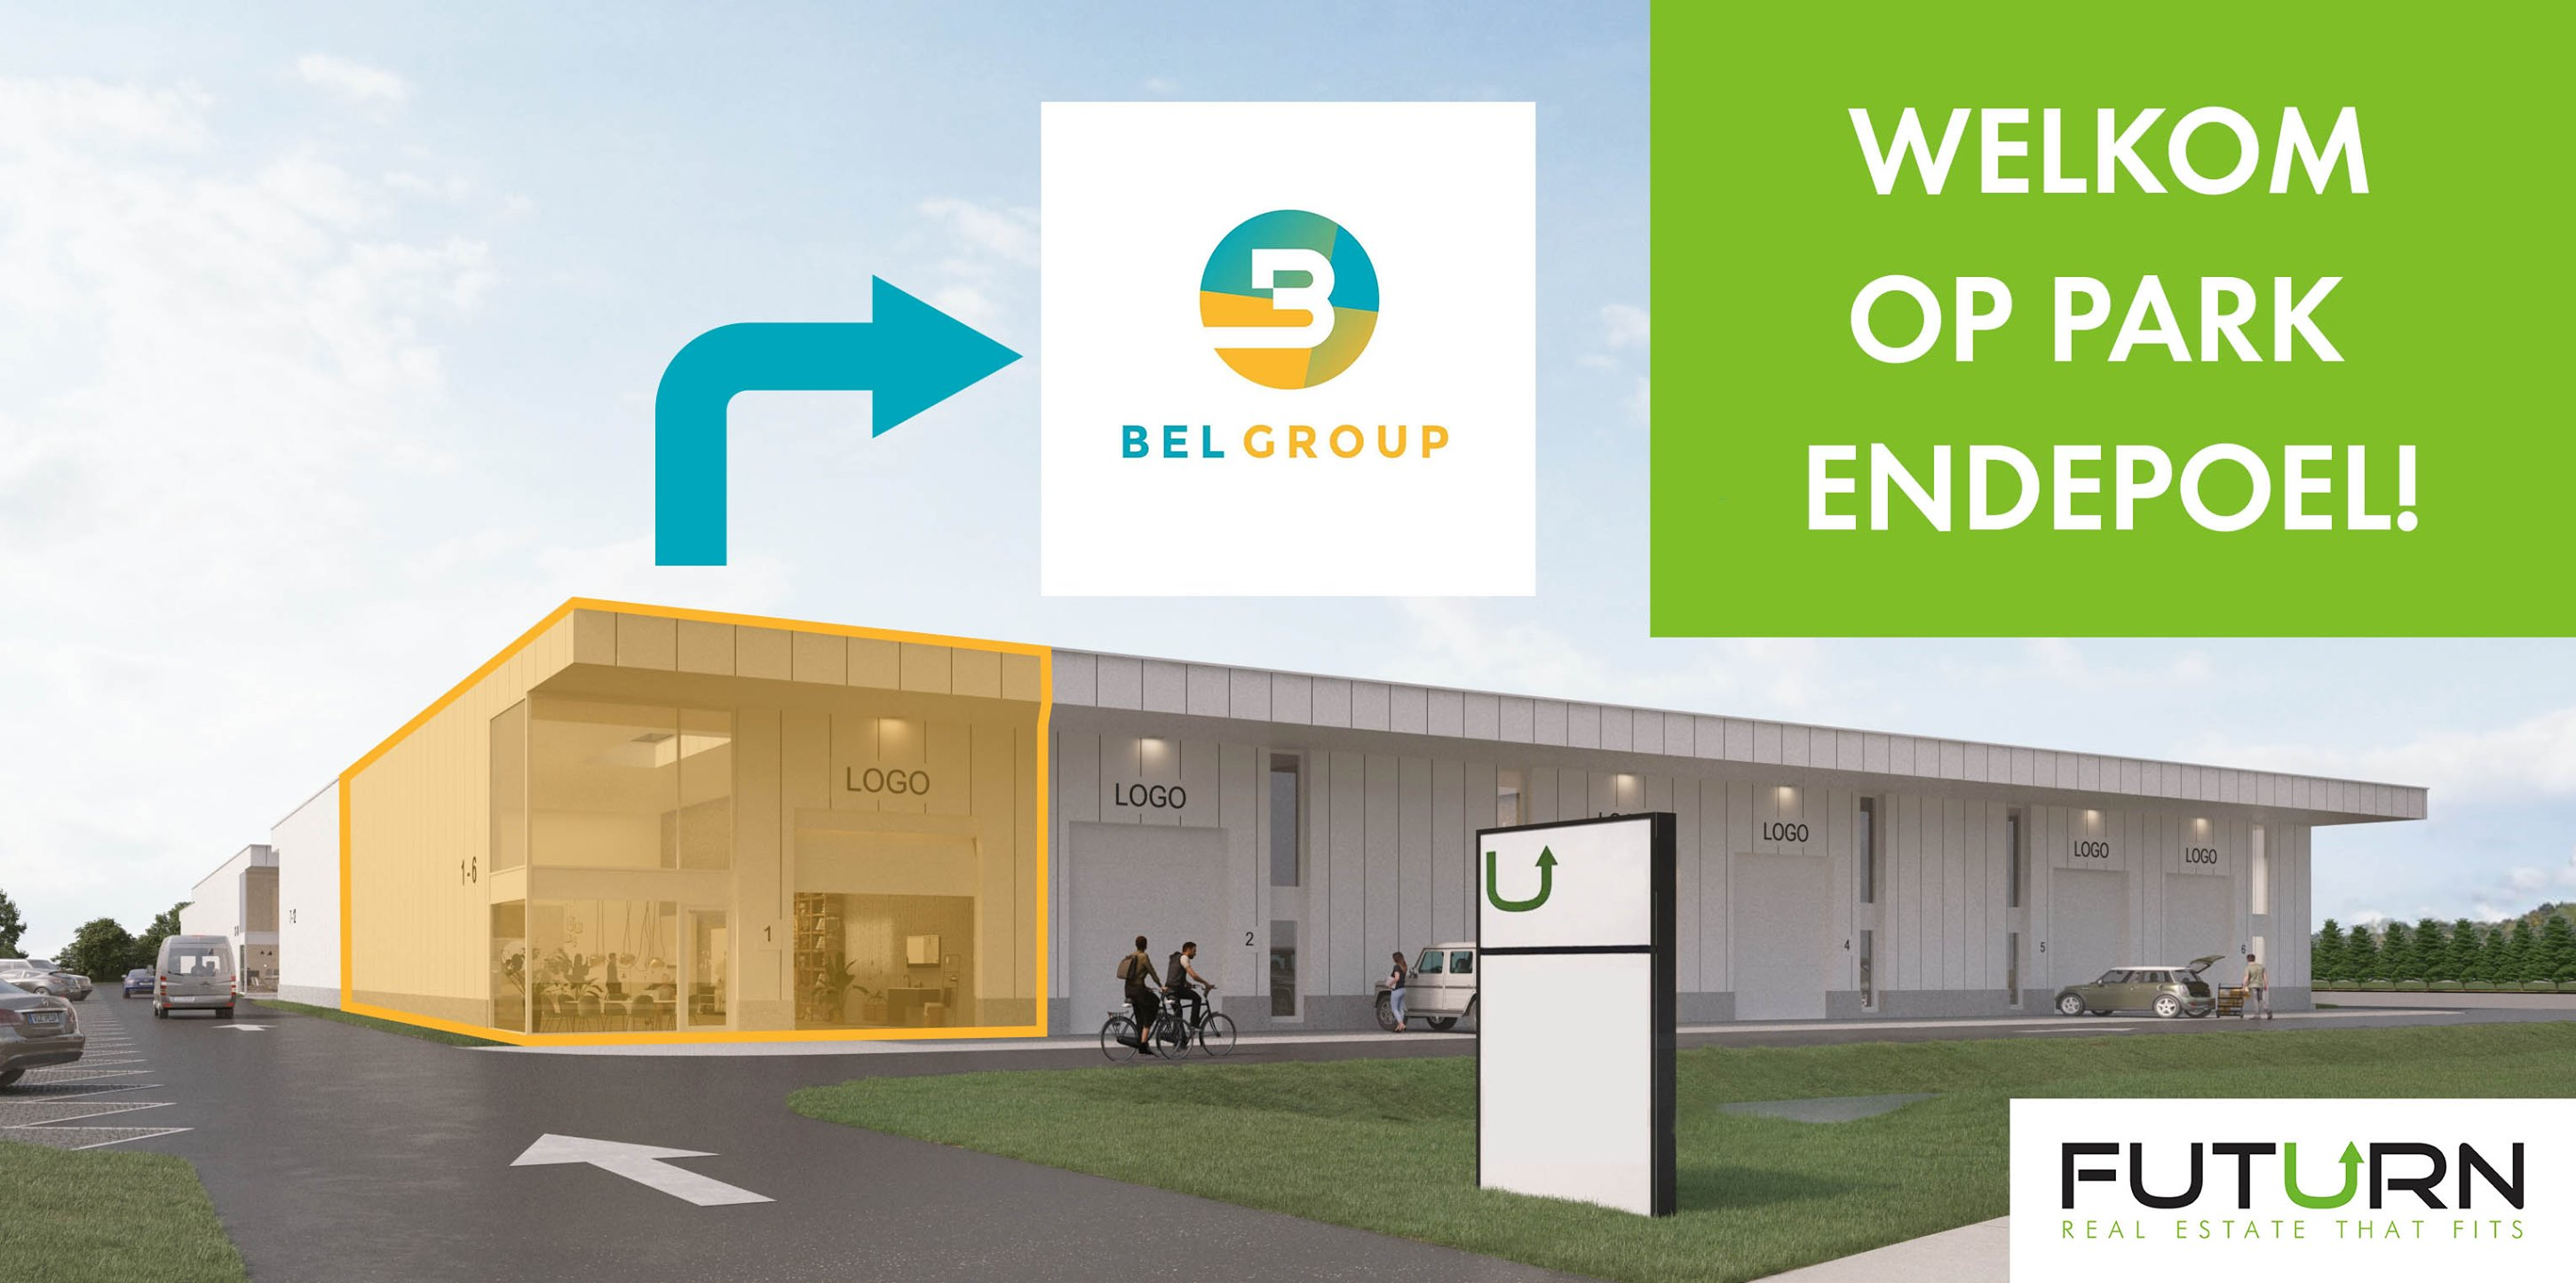 Bel Group Endepoel